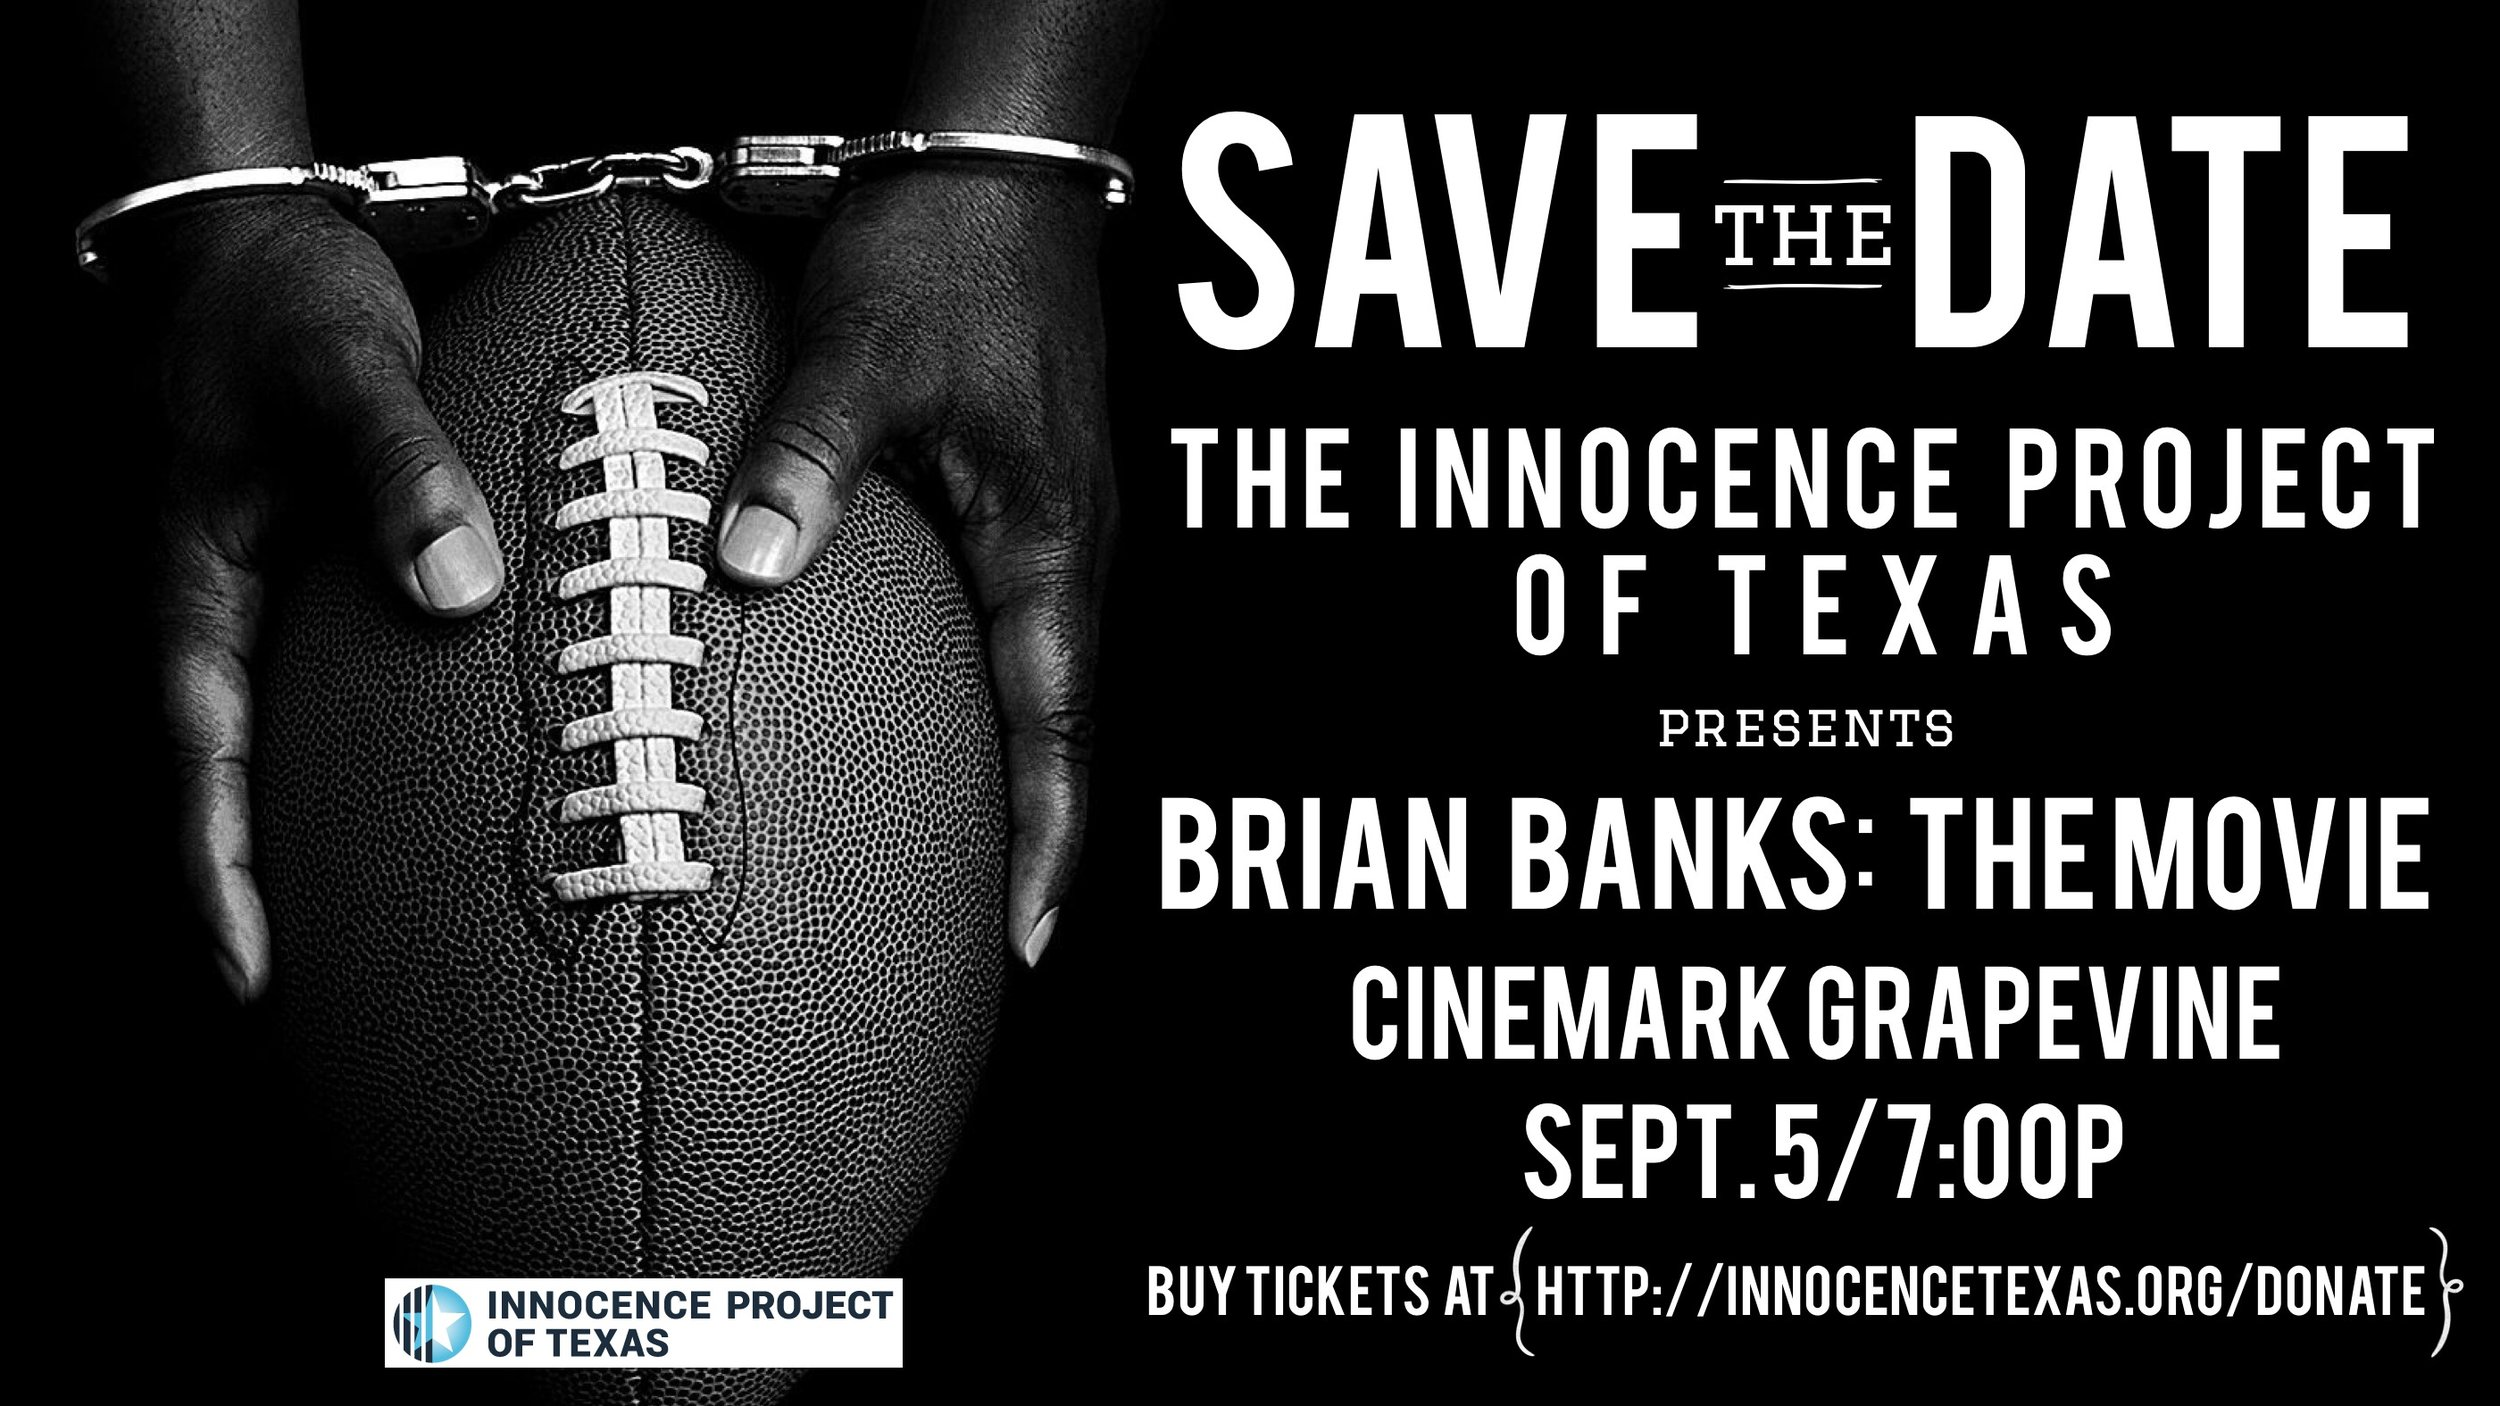 - The Innocence Project of Texas will host a private screening as a fundraiser of the Brian Banks movie at Cinemark Grapevine, TX Come early to meet and hear from Innocence Project of Texas staff and exonerees. Limited Seating. You MUST purchase your $20 ticket in advance:https://innocencetexas.org/donate/ click the event tab.